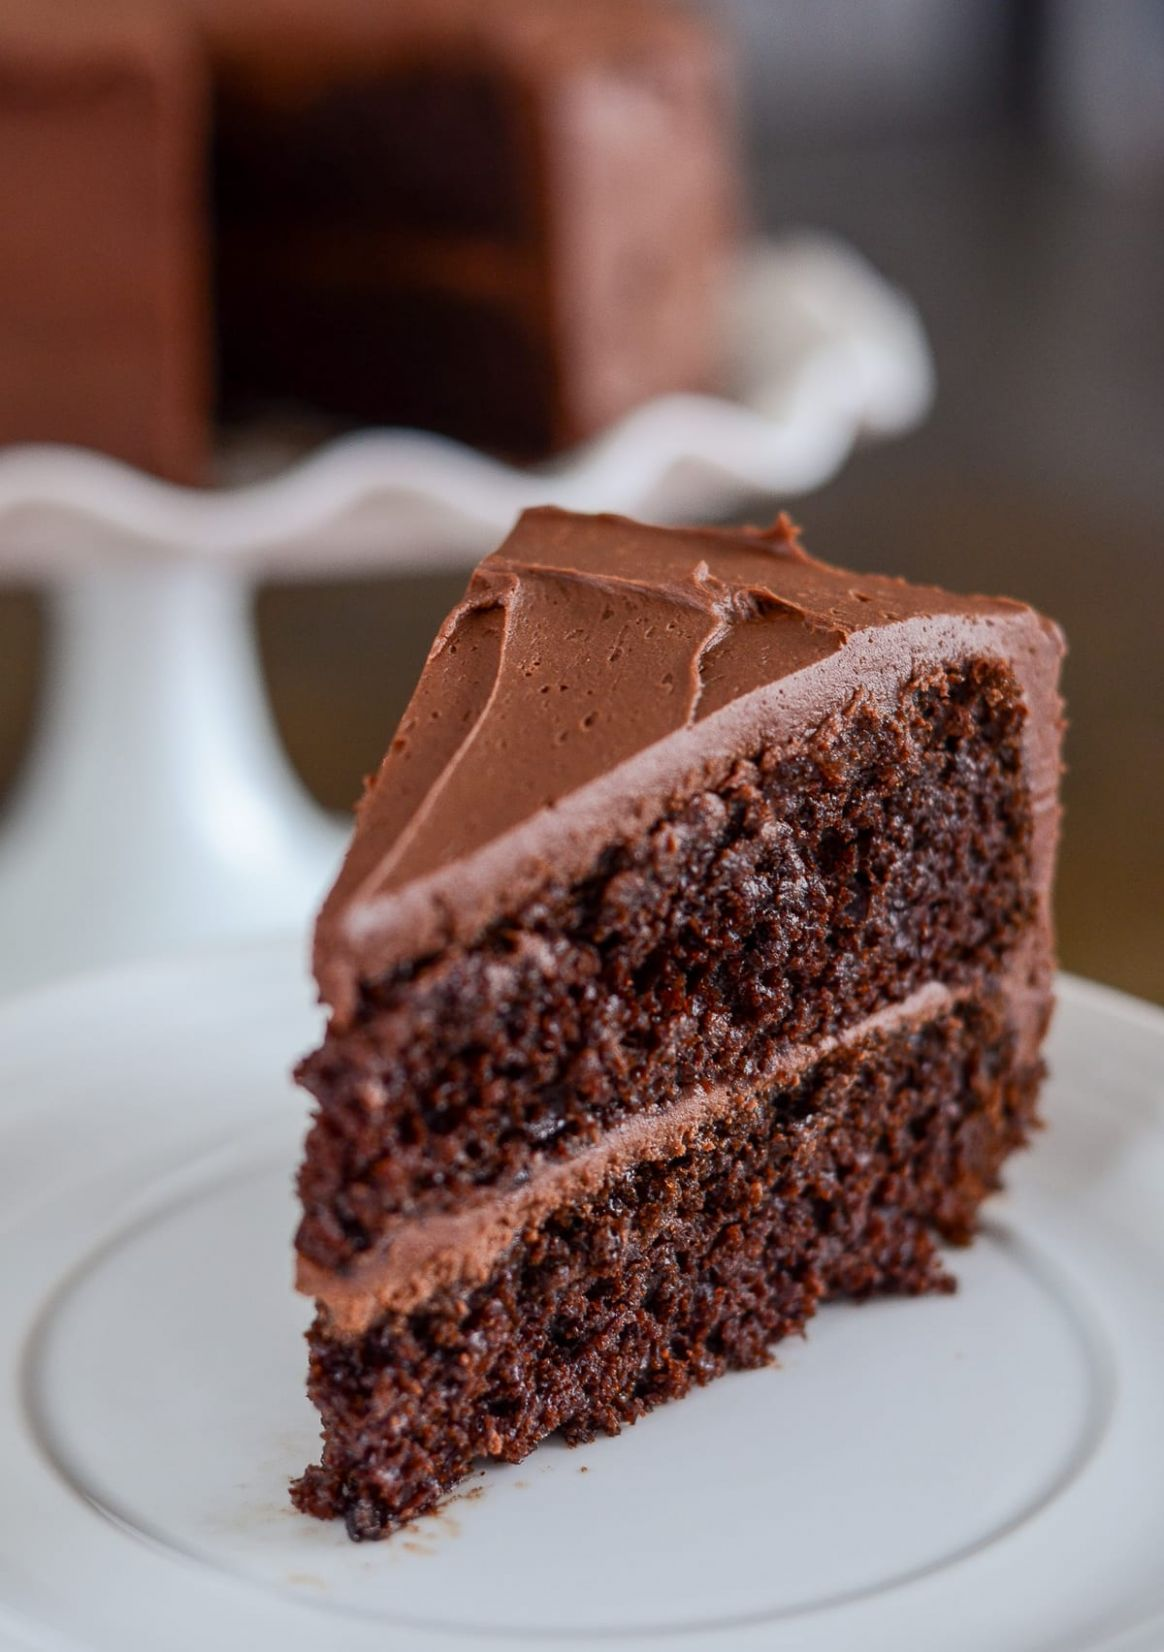 Chocolate Cake Recipe - Recipes Cake Frosting